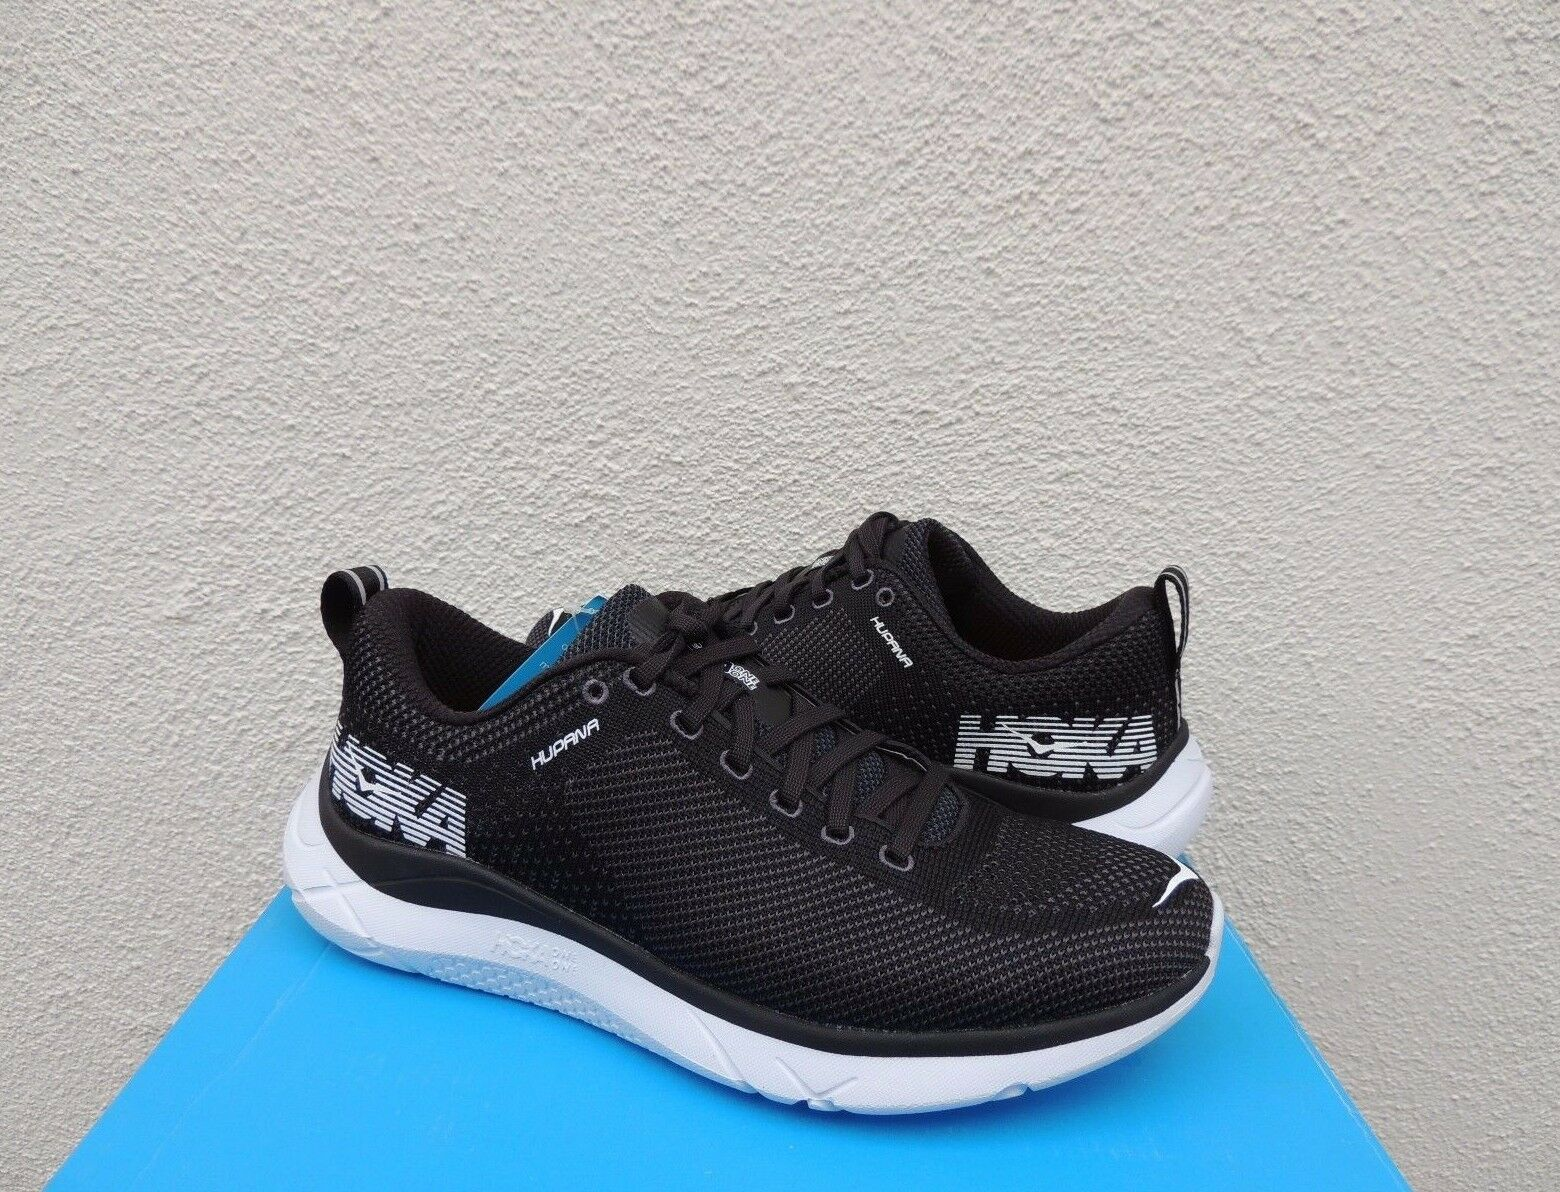 HOKA ONE ONE HUPANA nero  SHADOW ROAD RUNNING scarpe, US 7.5  EUR 39 1 3 NIB